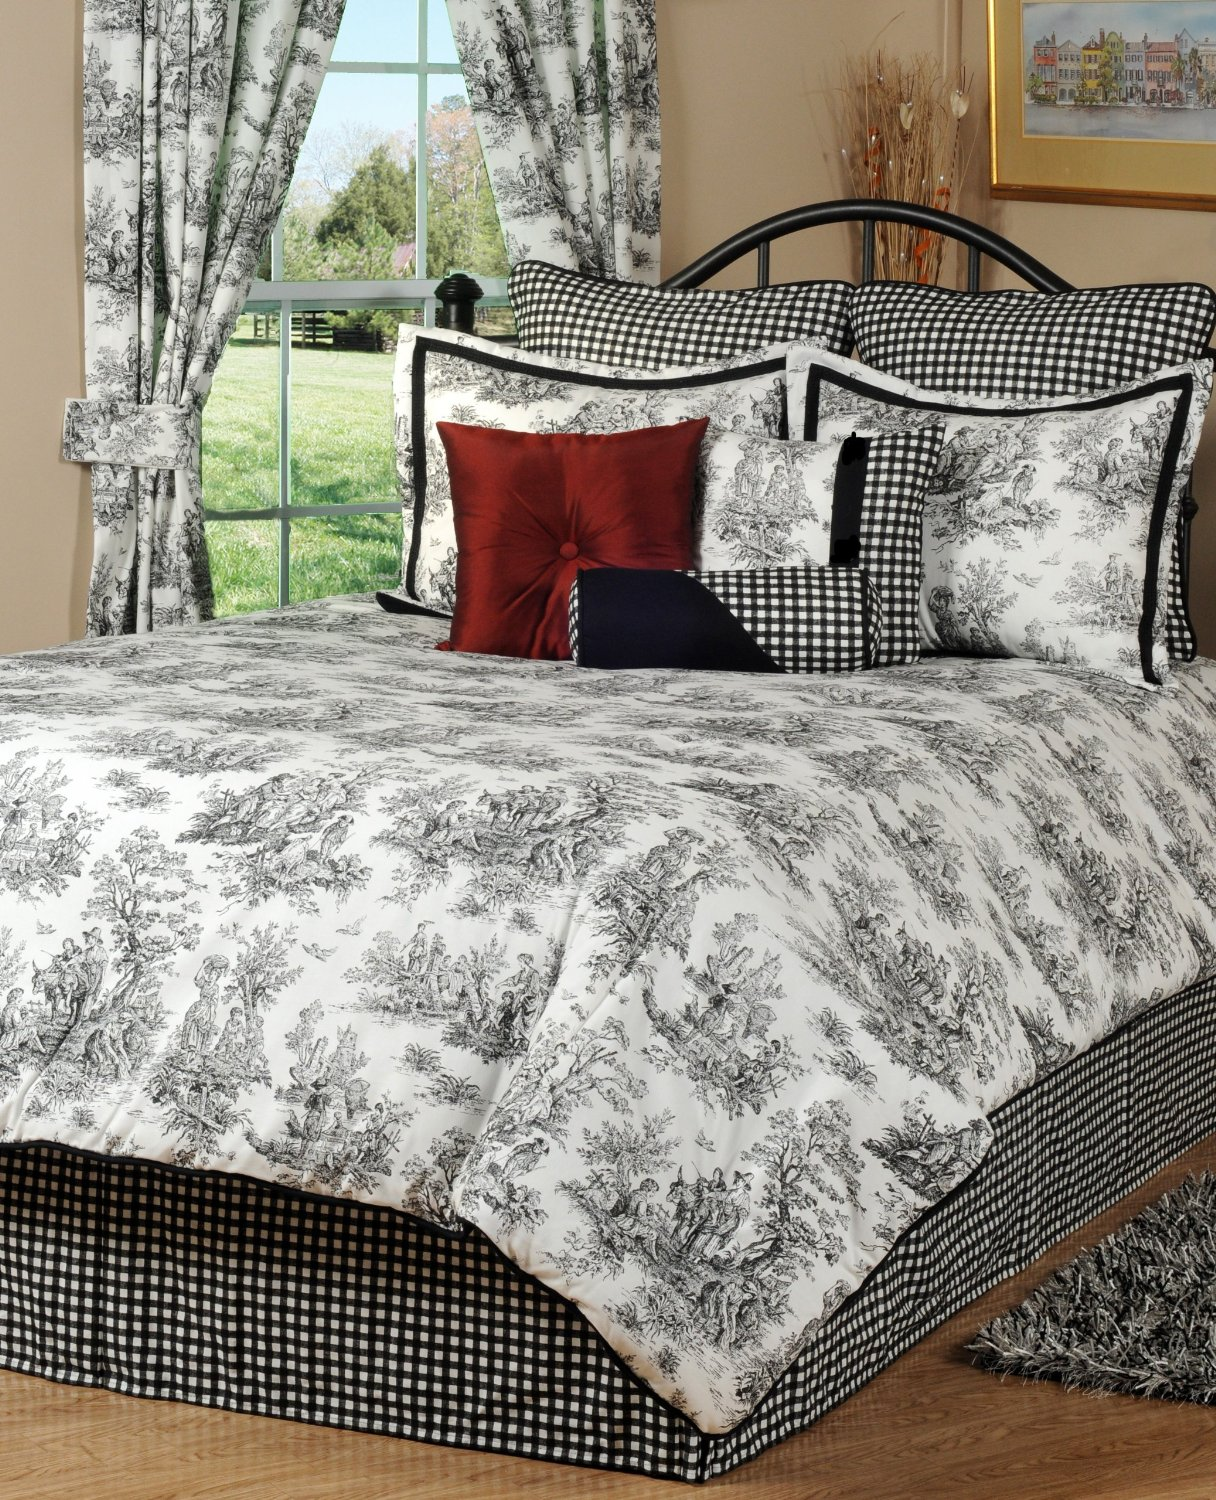 Total Fab: Black and White/Cream Toile & Damask Comforters